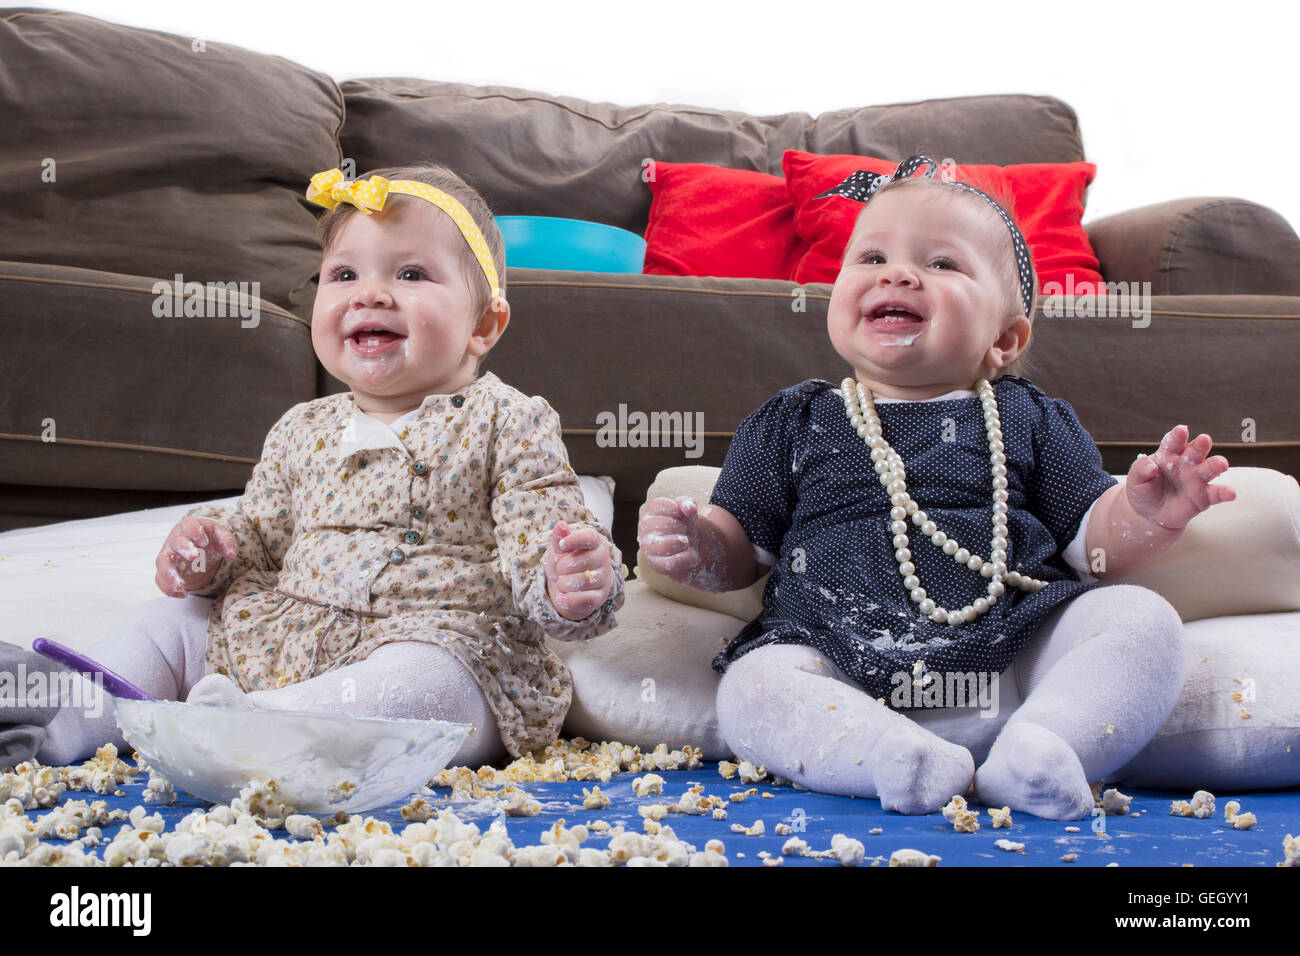 introducing food to baby, happy twin babies making a mess - Stock Image